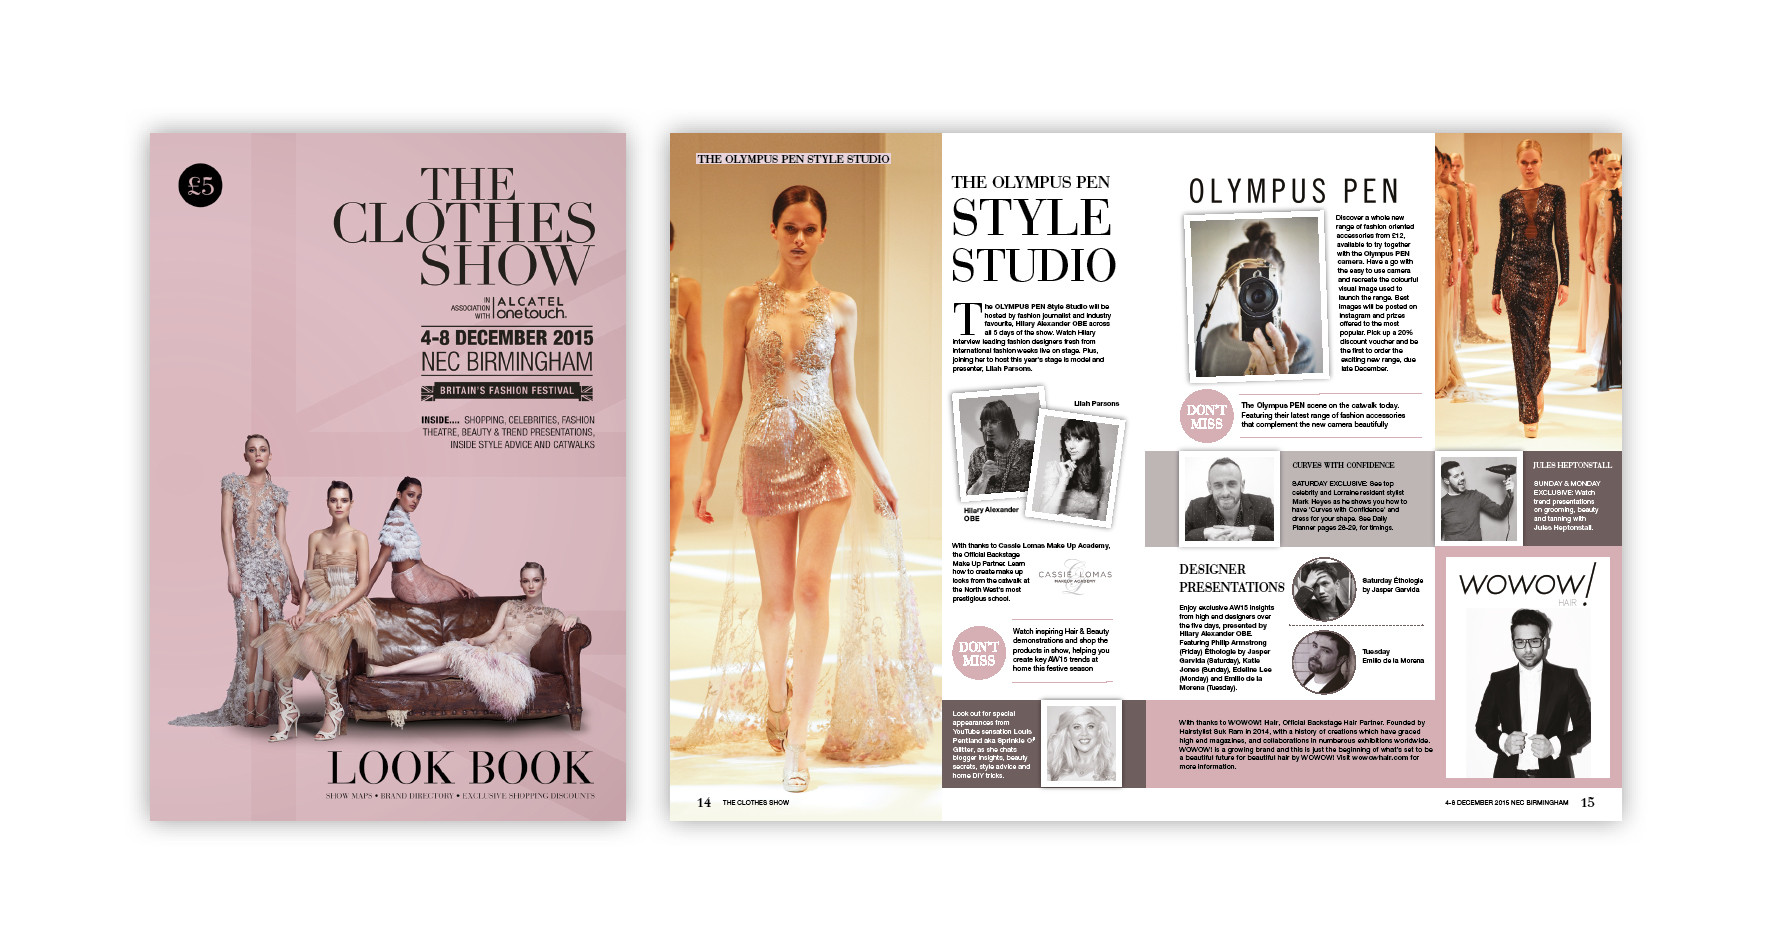 Exhibition Show guide for The Clothes Show Live